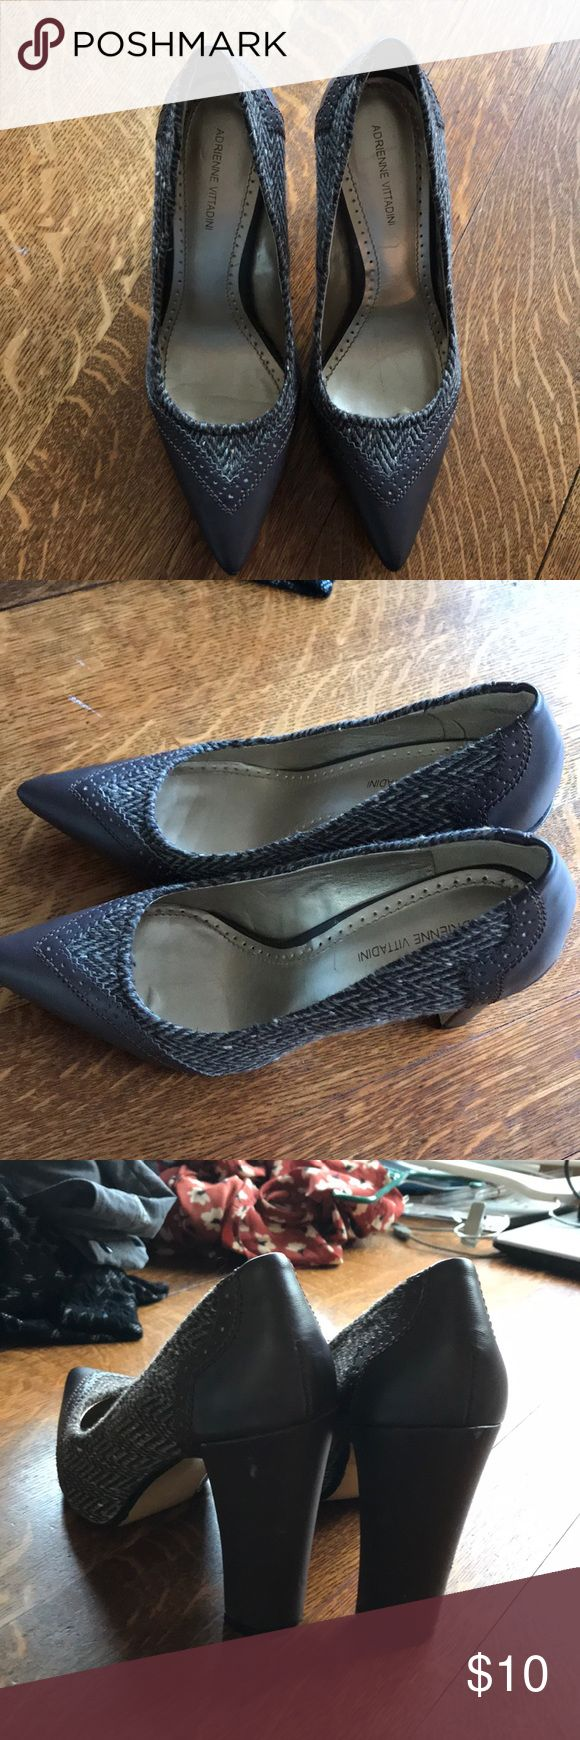 """Adrienne Vittadini Brown/tweed pumps Size 9.5 Adrienne Vittadini brown leather and tweed pumps. 4"""" heel. Worn a couple of times. Scuffs on back that would cover easily with polish. Great life left in them Adrienne Vittadini Shoes Heels"""